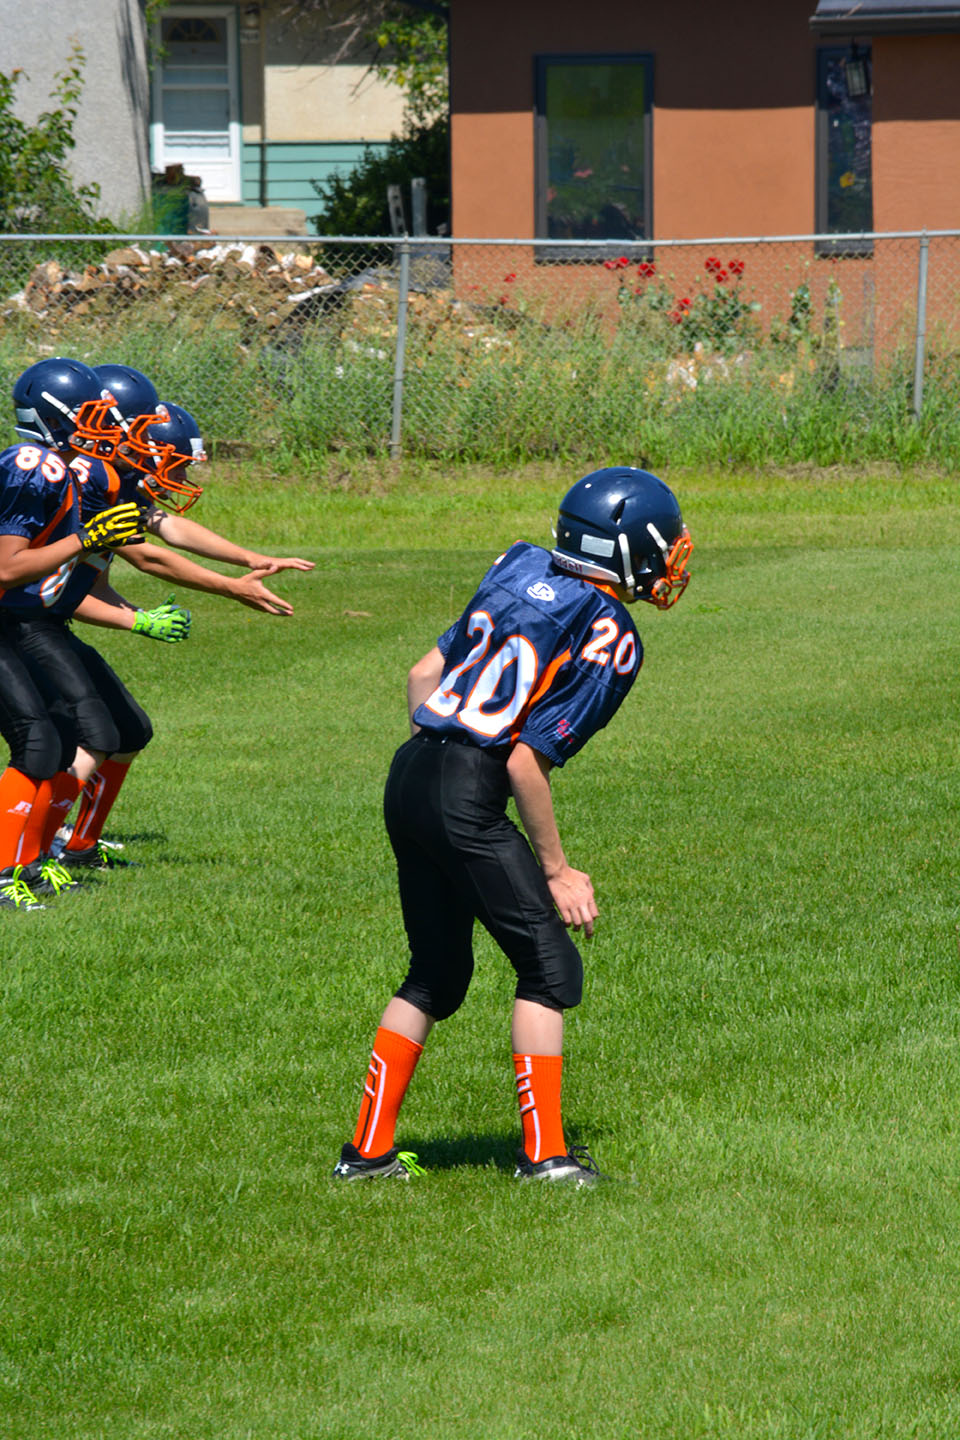 Jude in his first football game, ever.